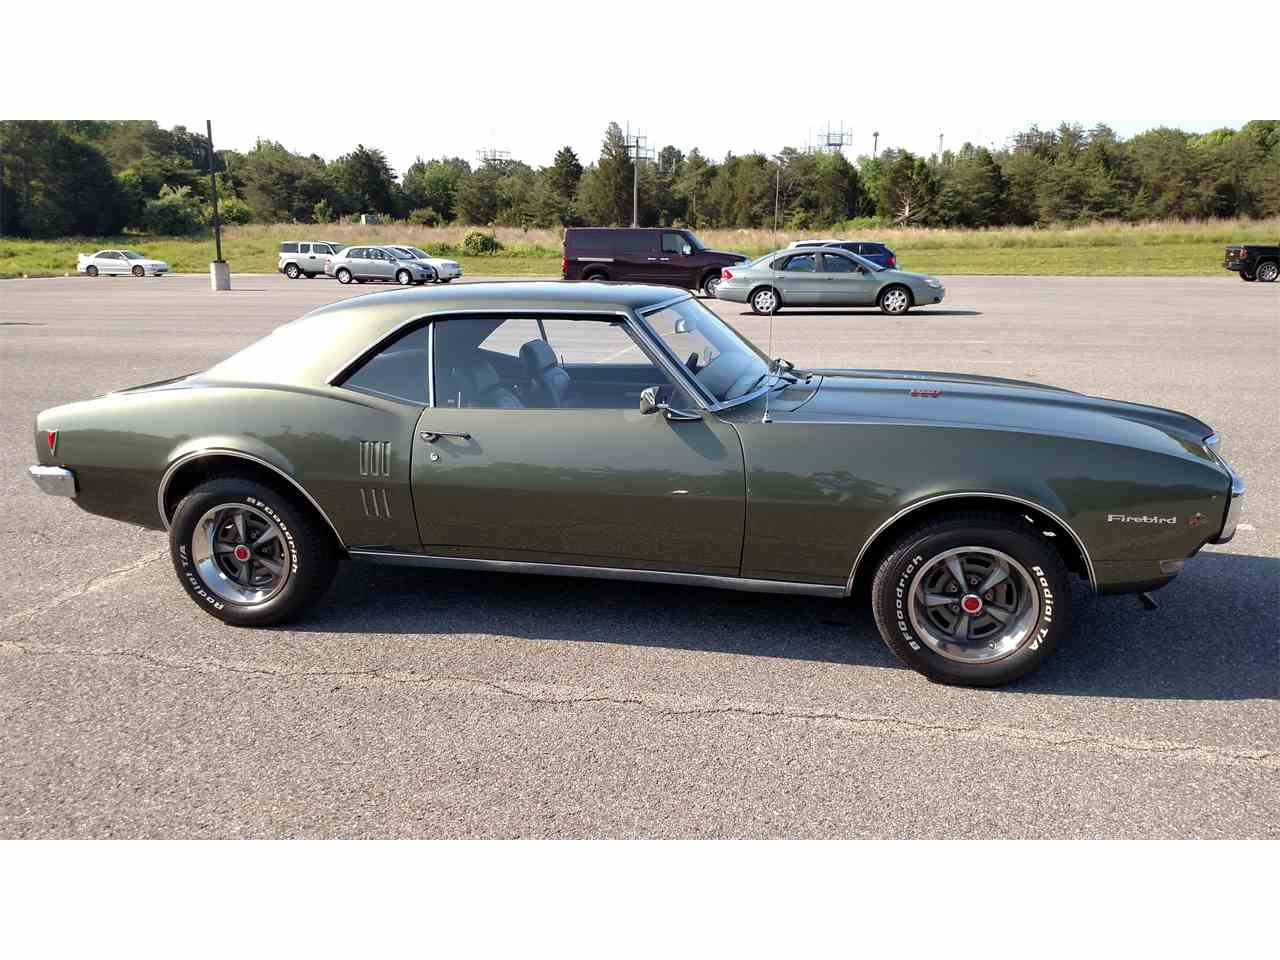 Large Picture of Classic '68 Firebird located in Lusby Maryland - $31,495.00 - NI9T